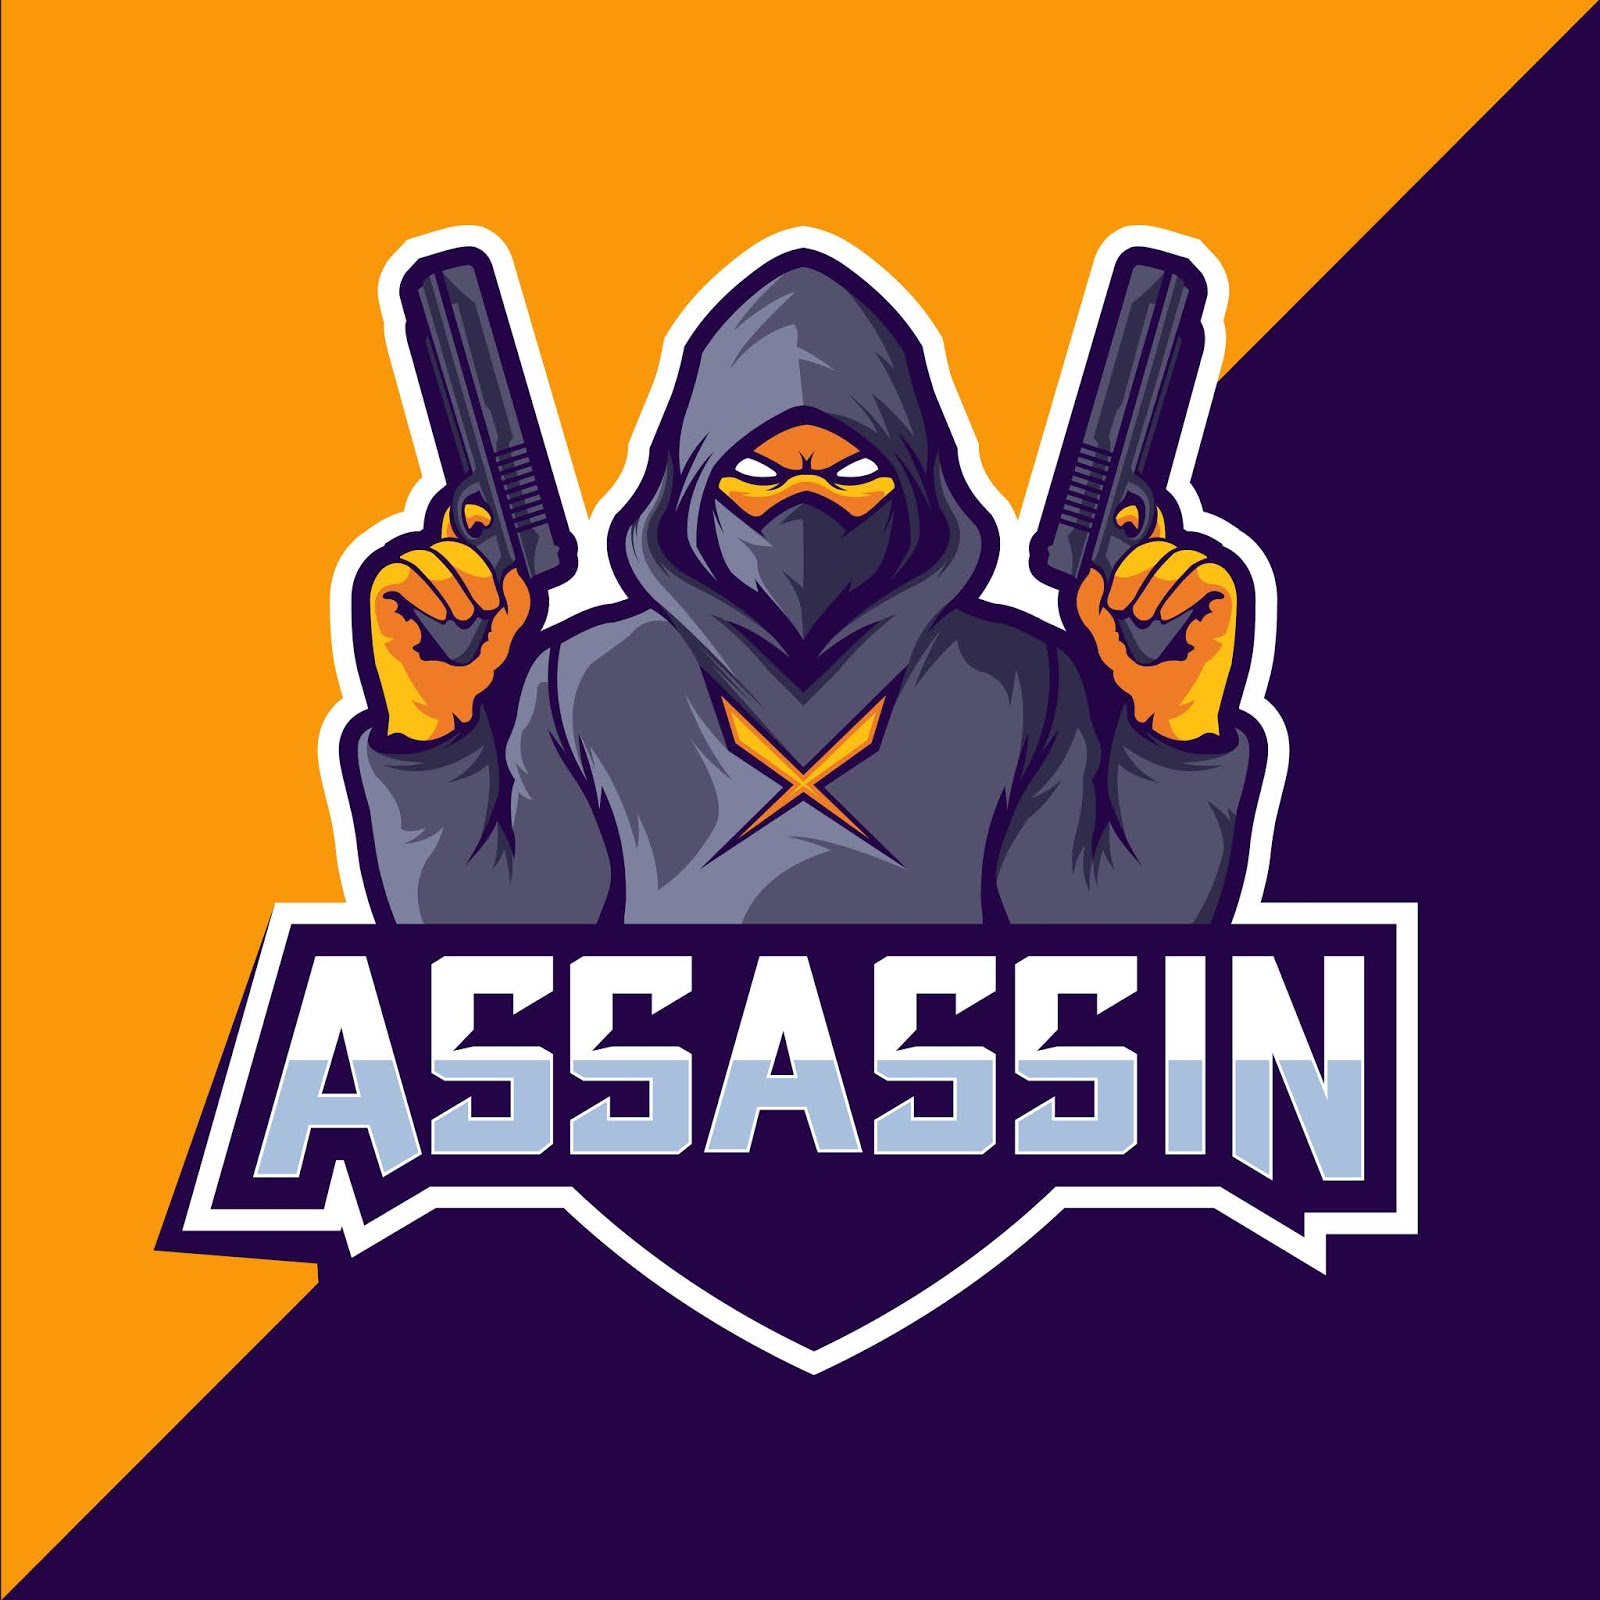 Assassin With Guns Mascot Esport Logo Free Download Vector CDR, AI, EPS and PNG Formats